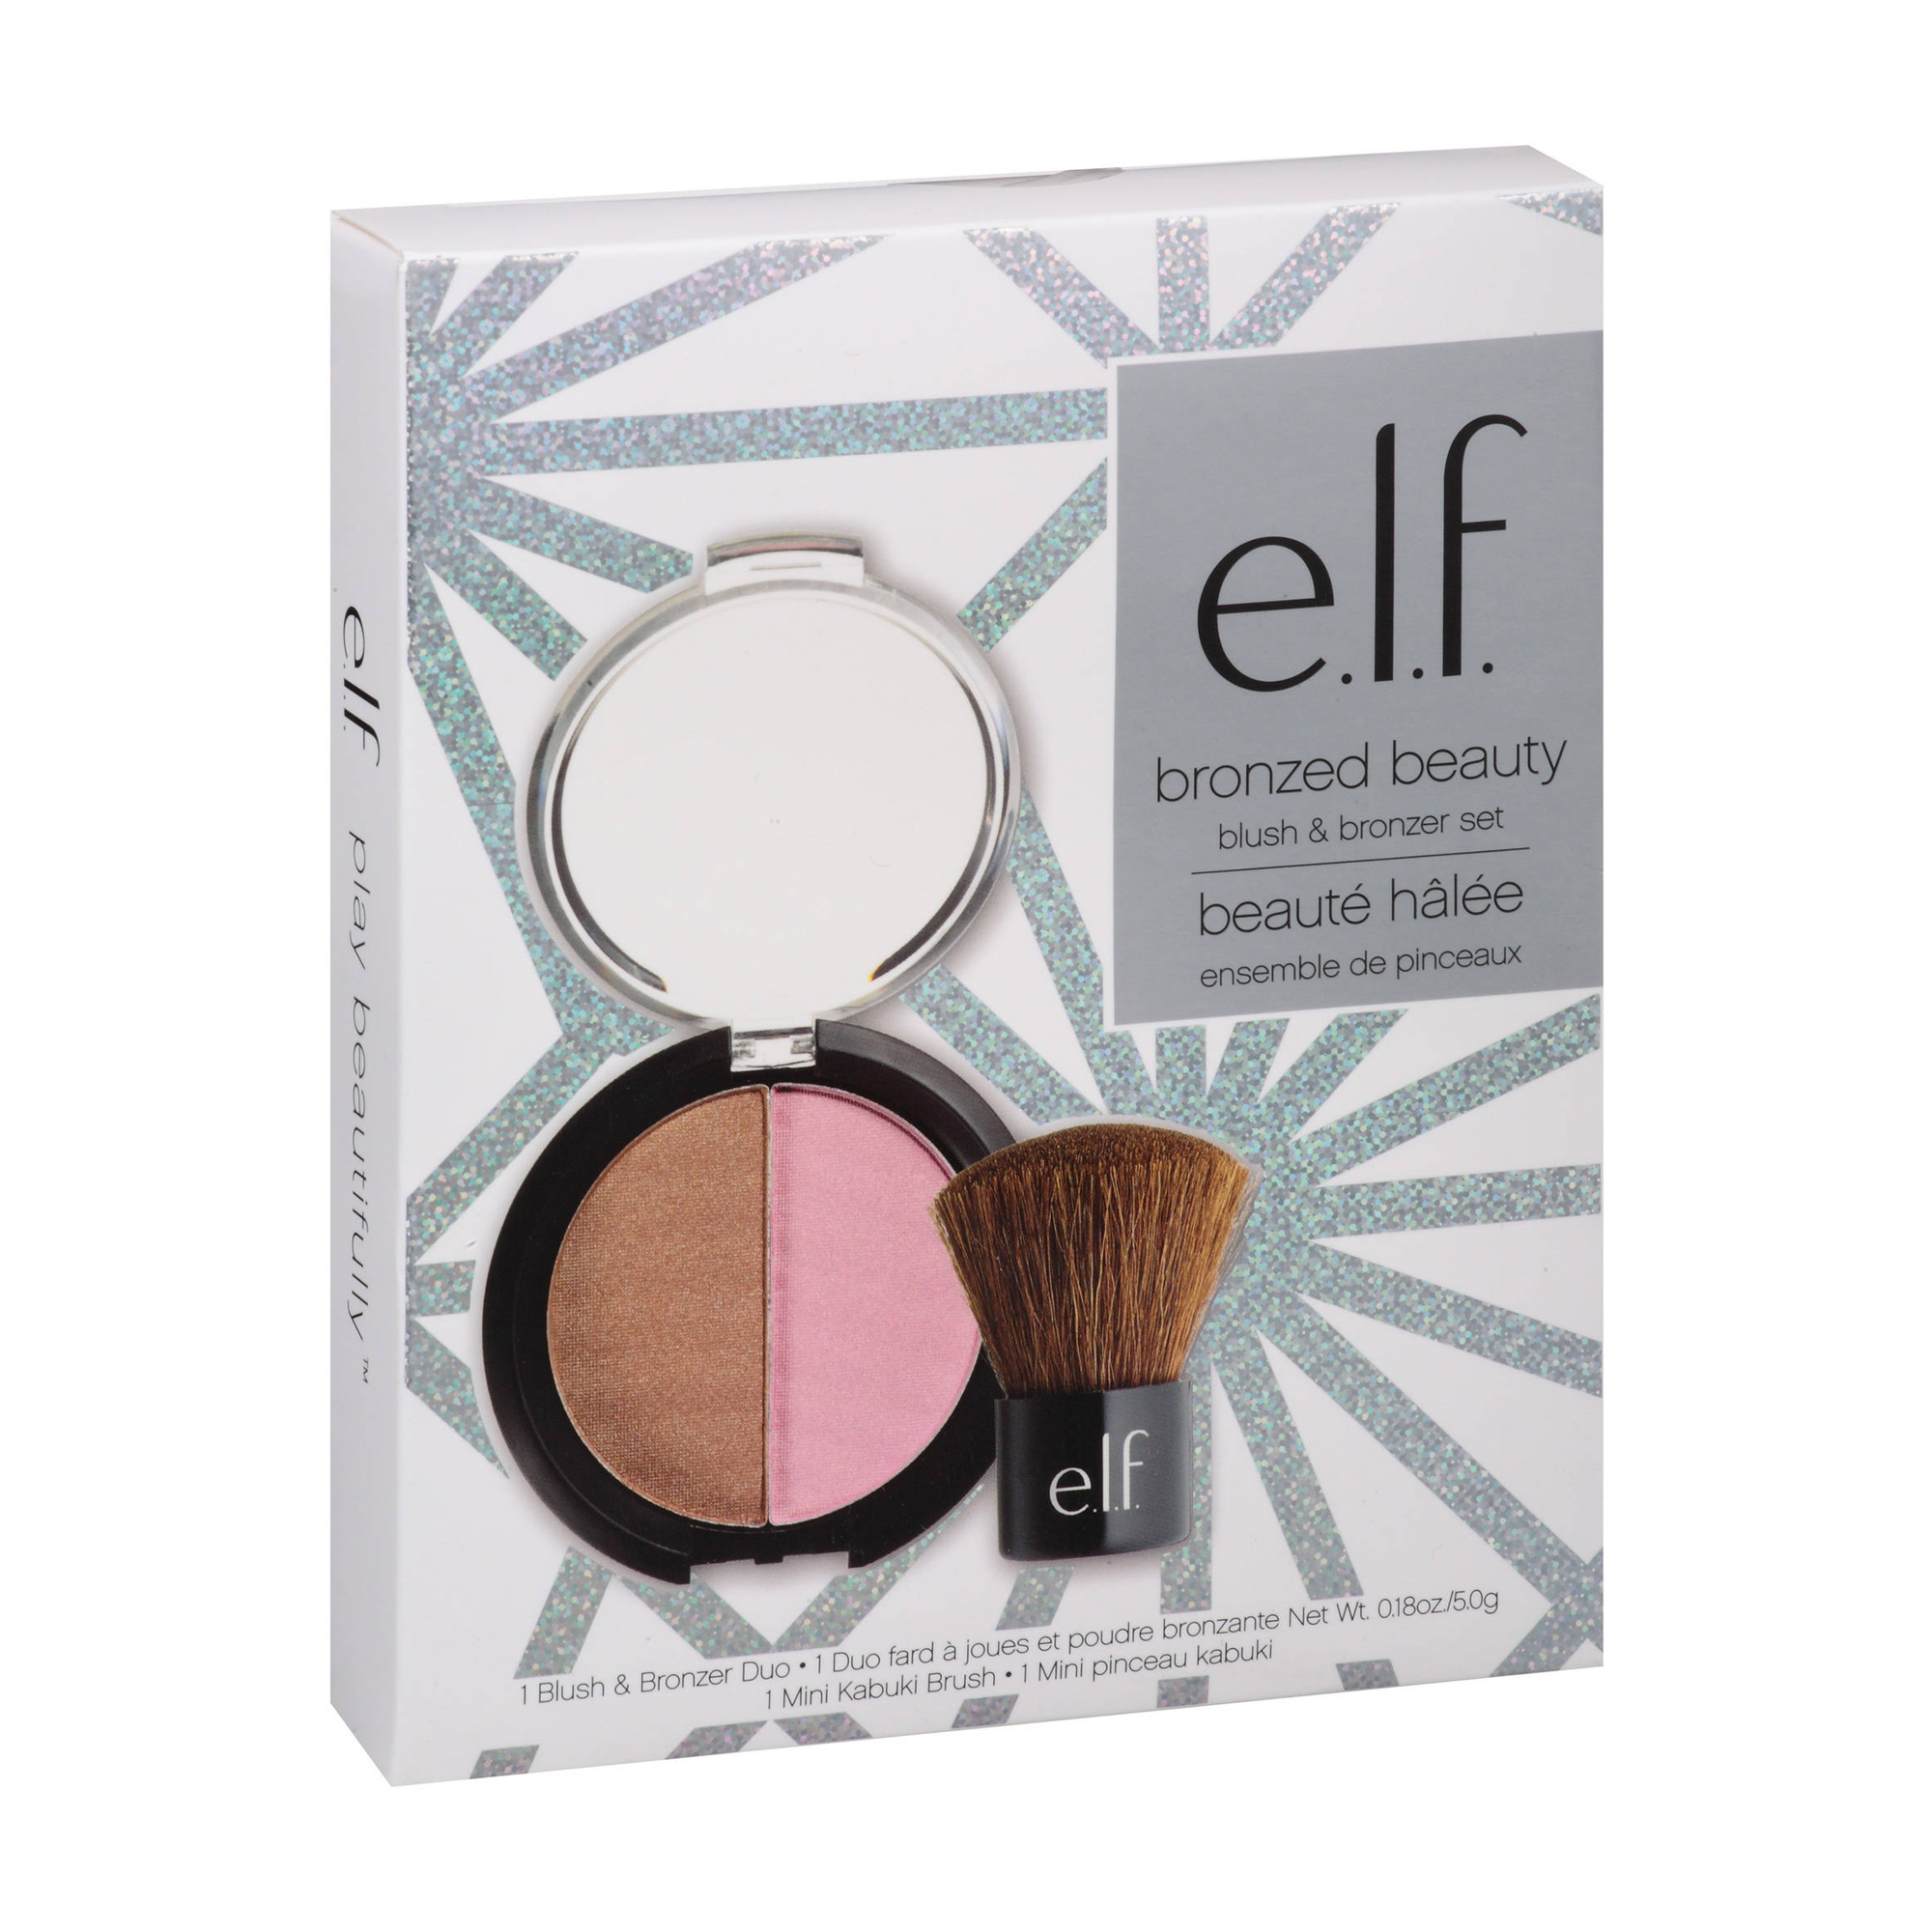 e.l.f Bronzed Beauty Blush & Bronzer